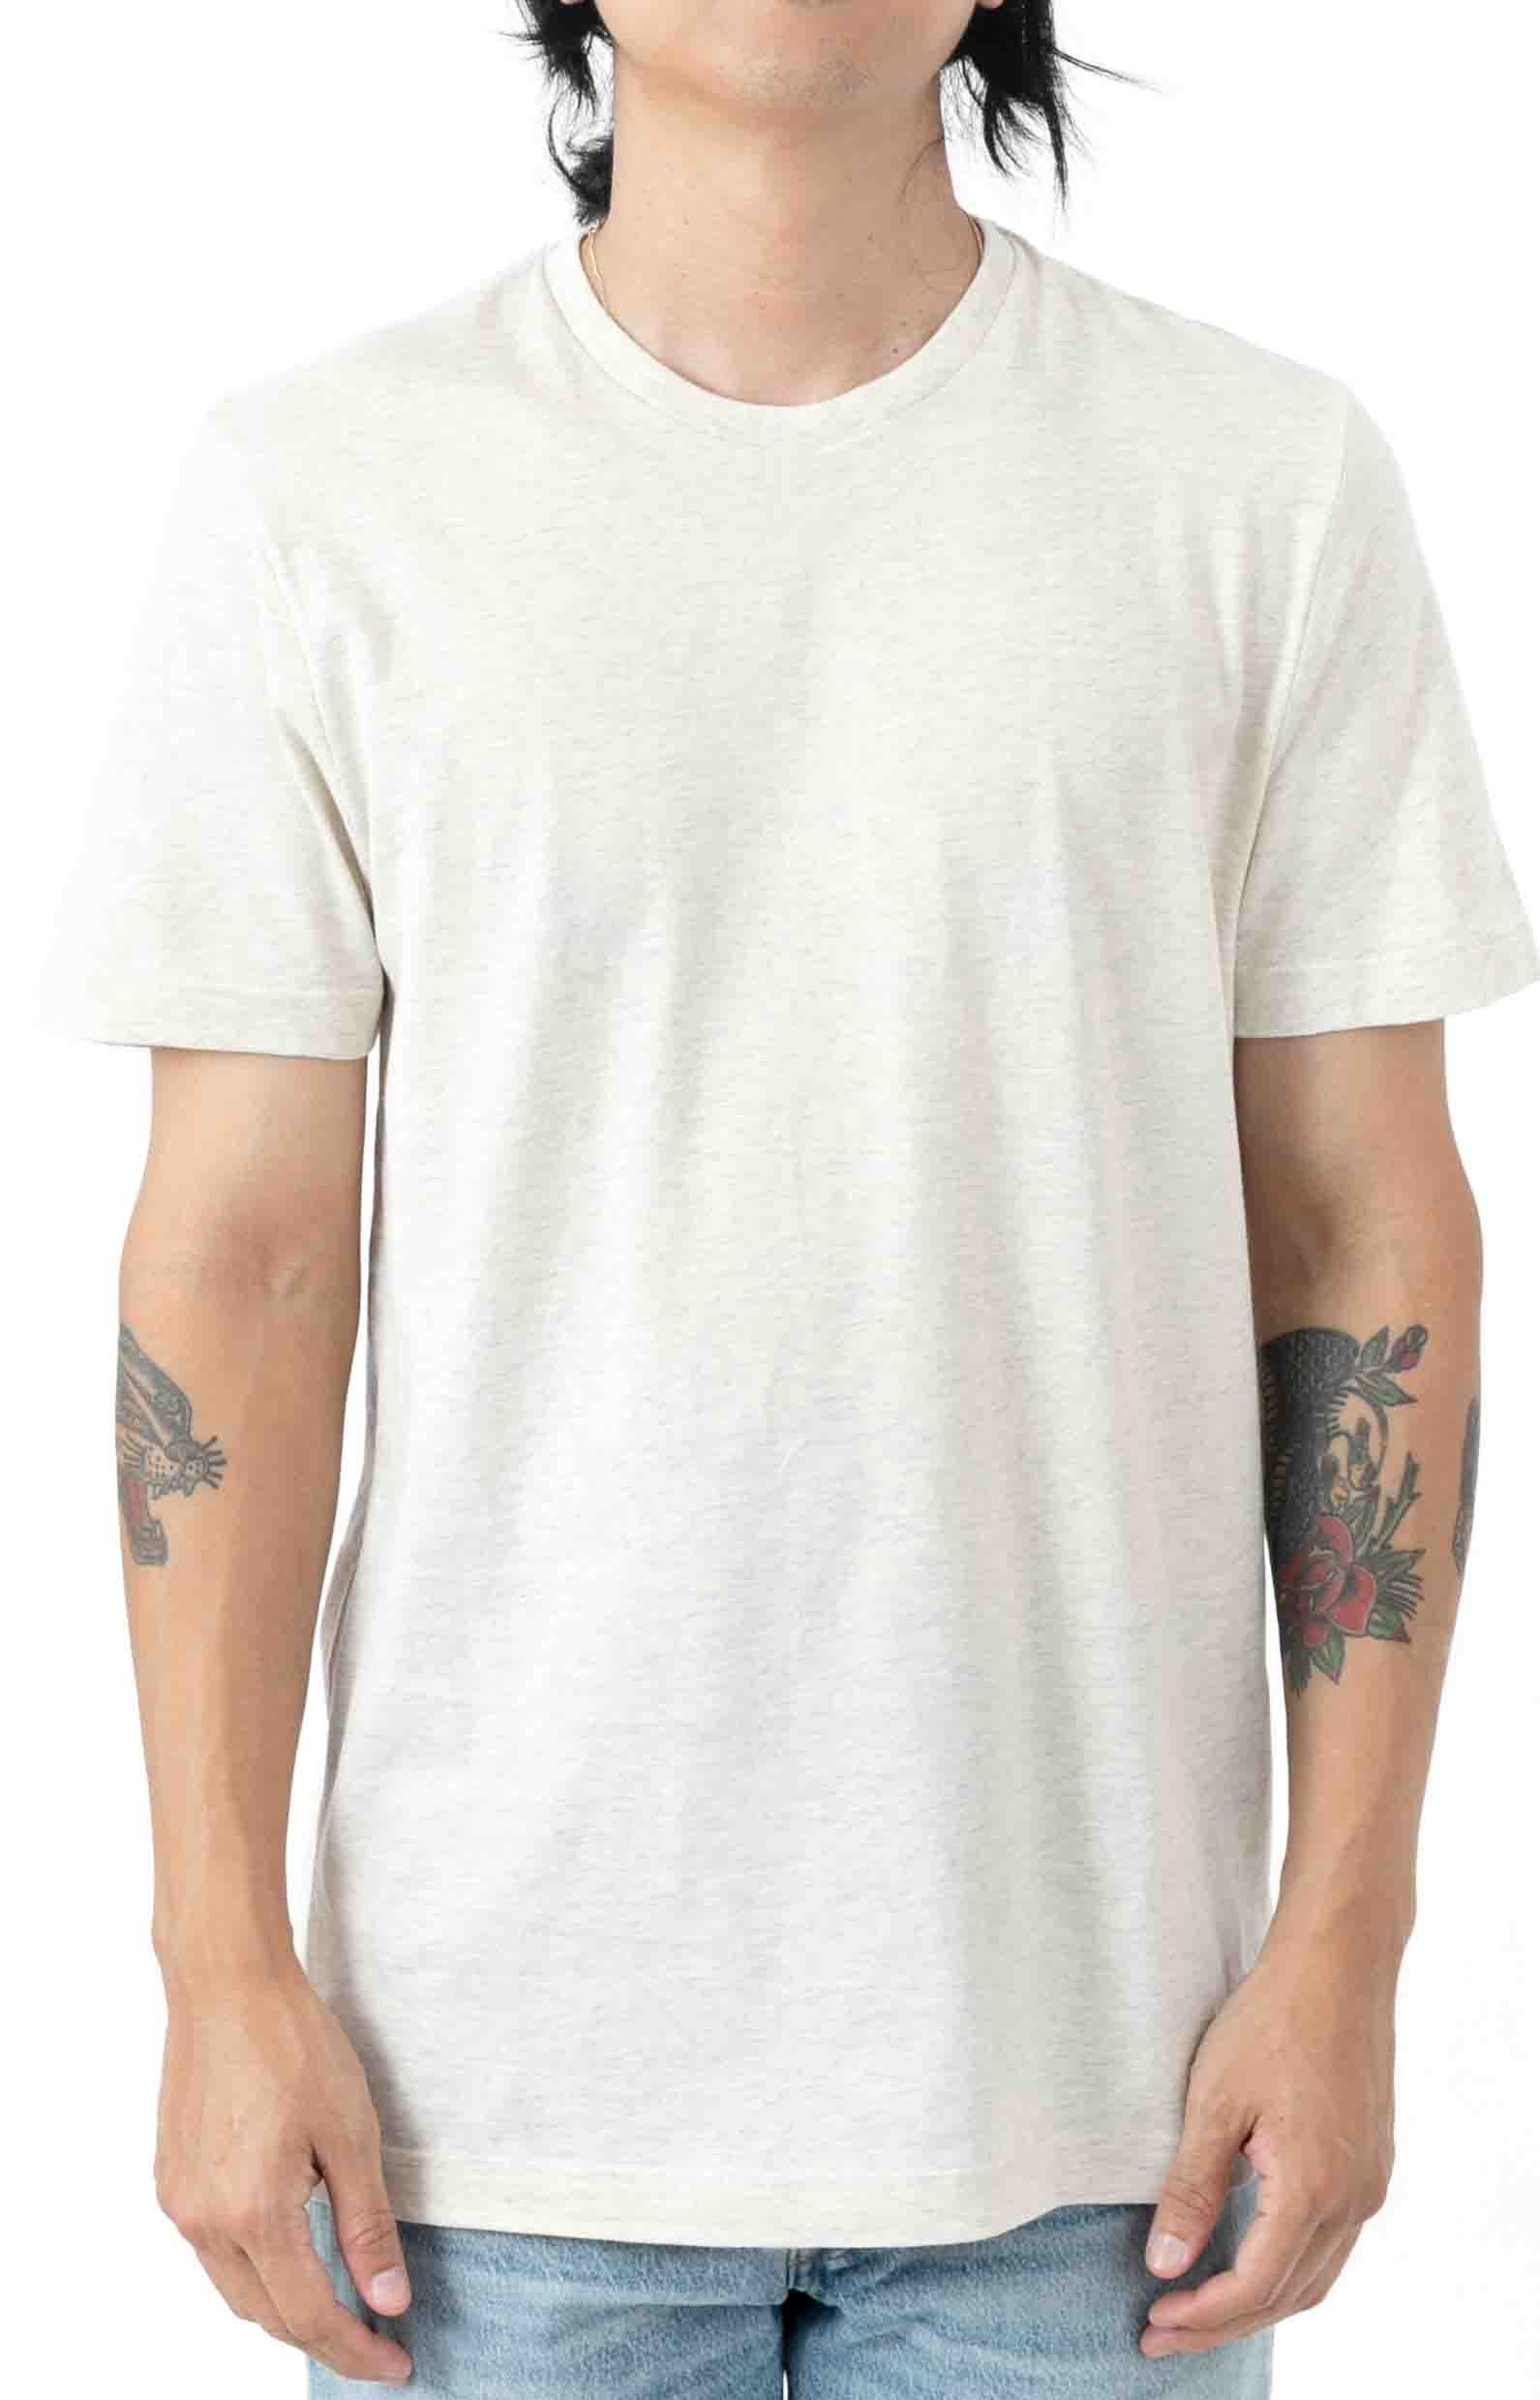 (L163RL) Relaxed Fit Crew T-Shirt - Oxford Heather